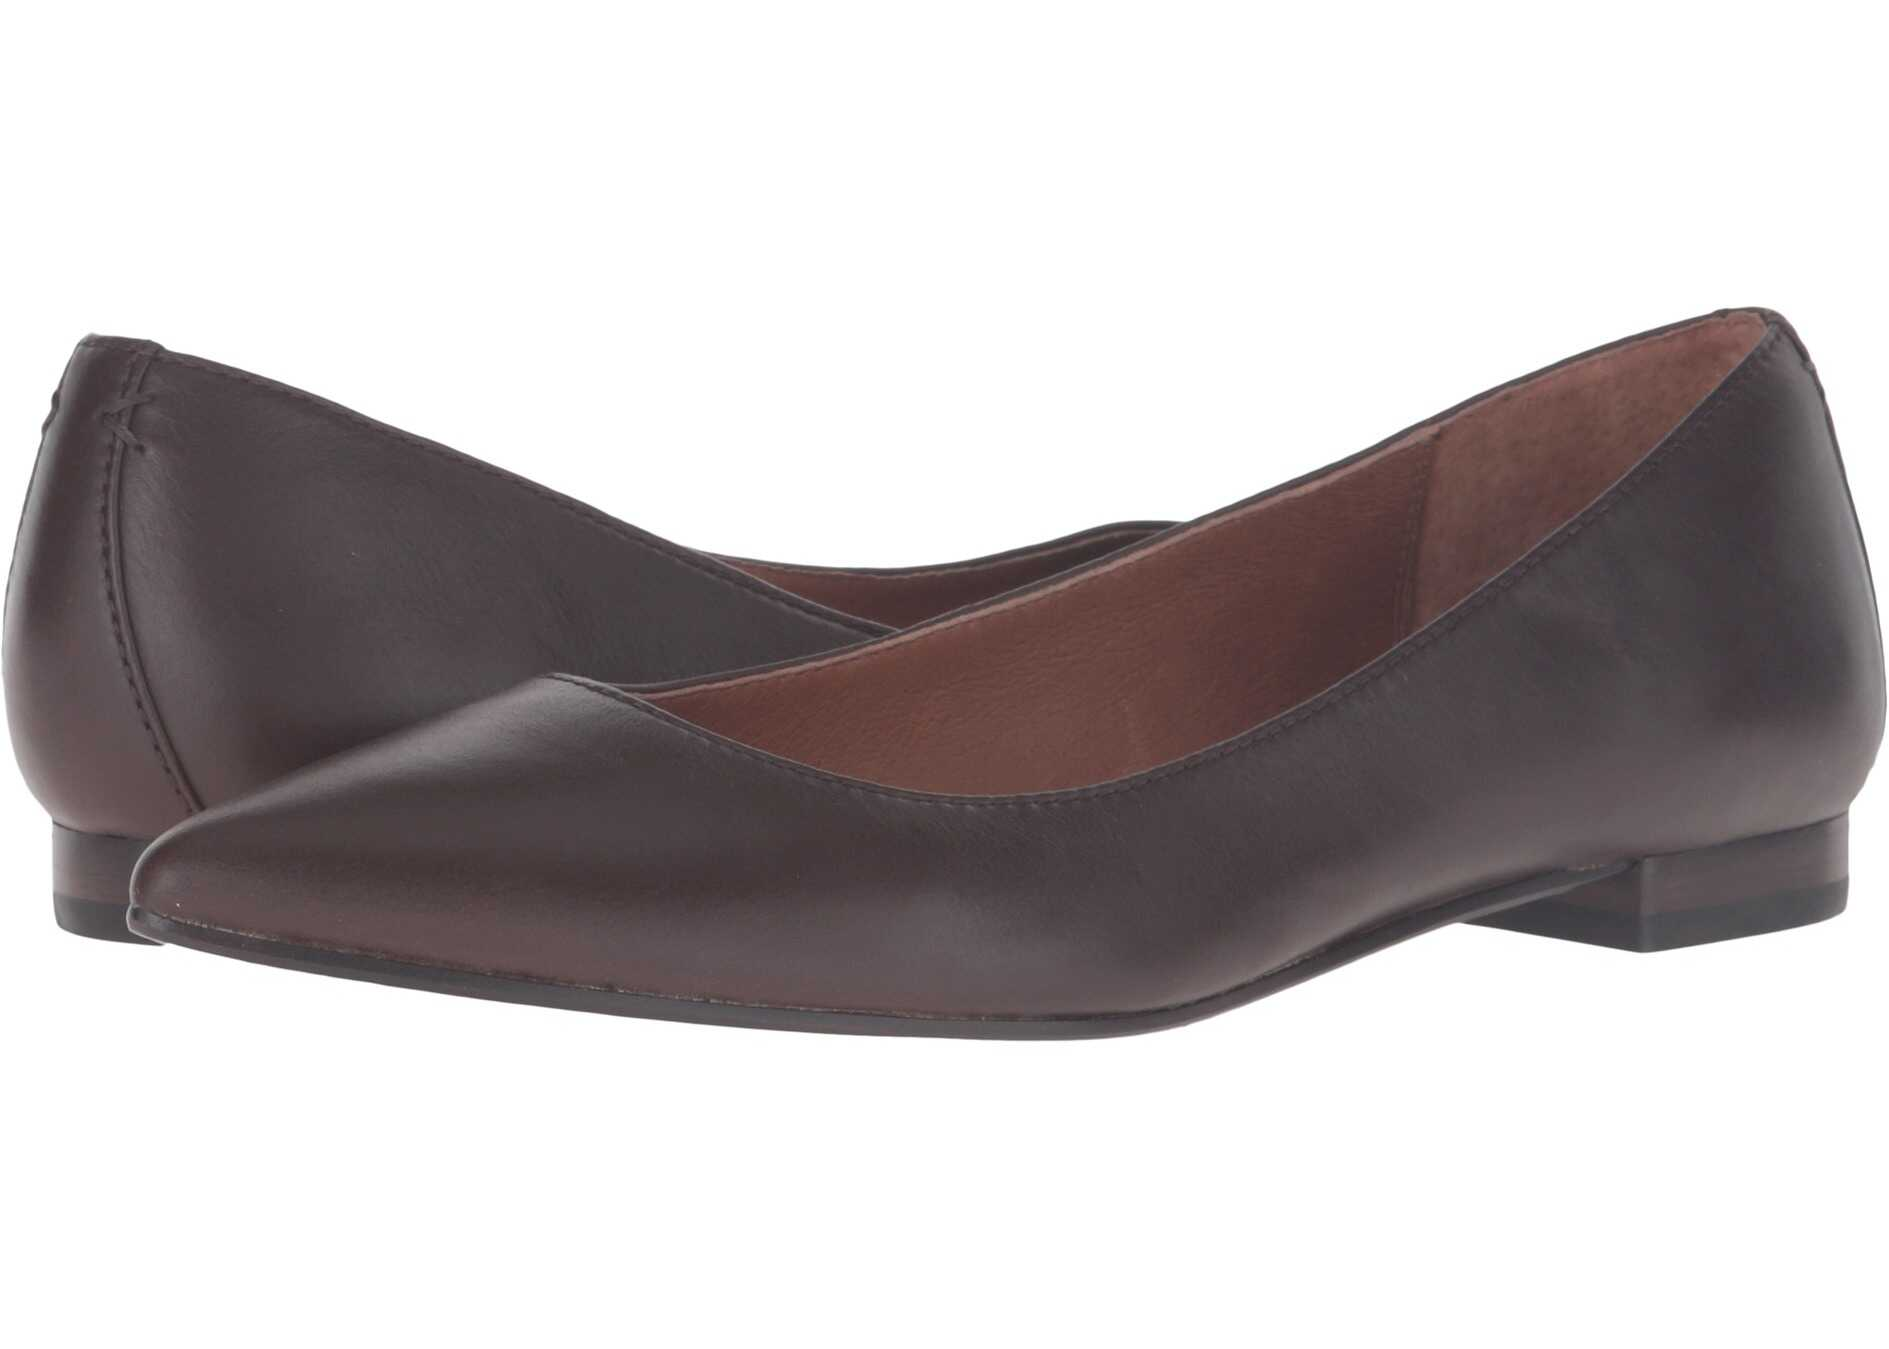 Frye Sienna Ballet Chocolate Soft Full Grain